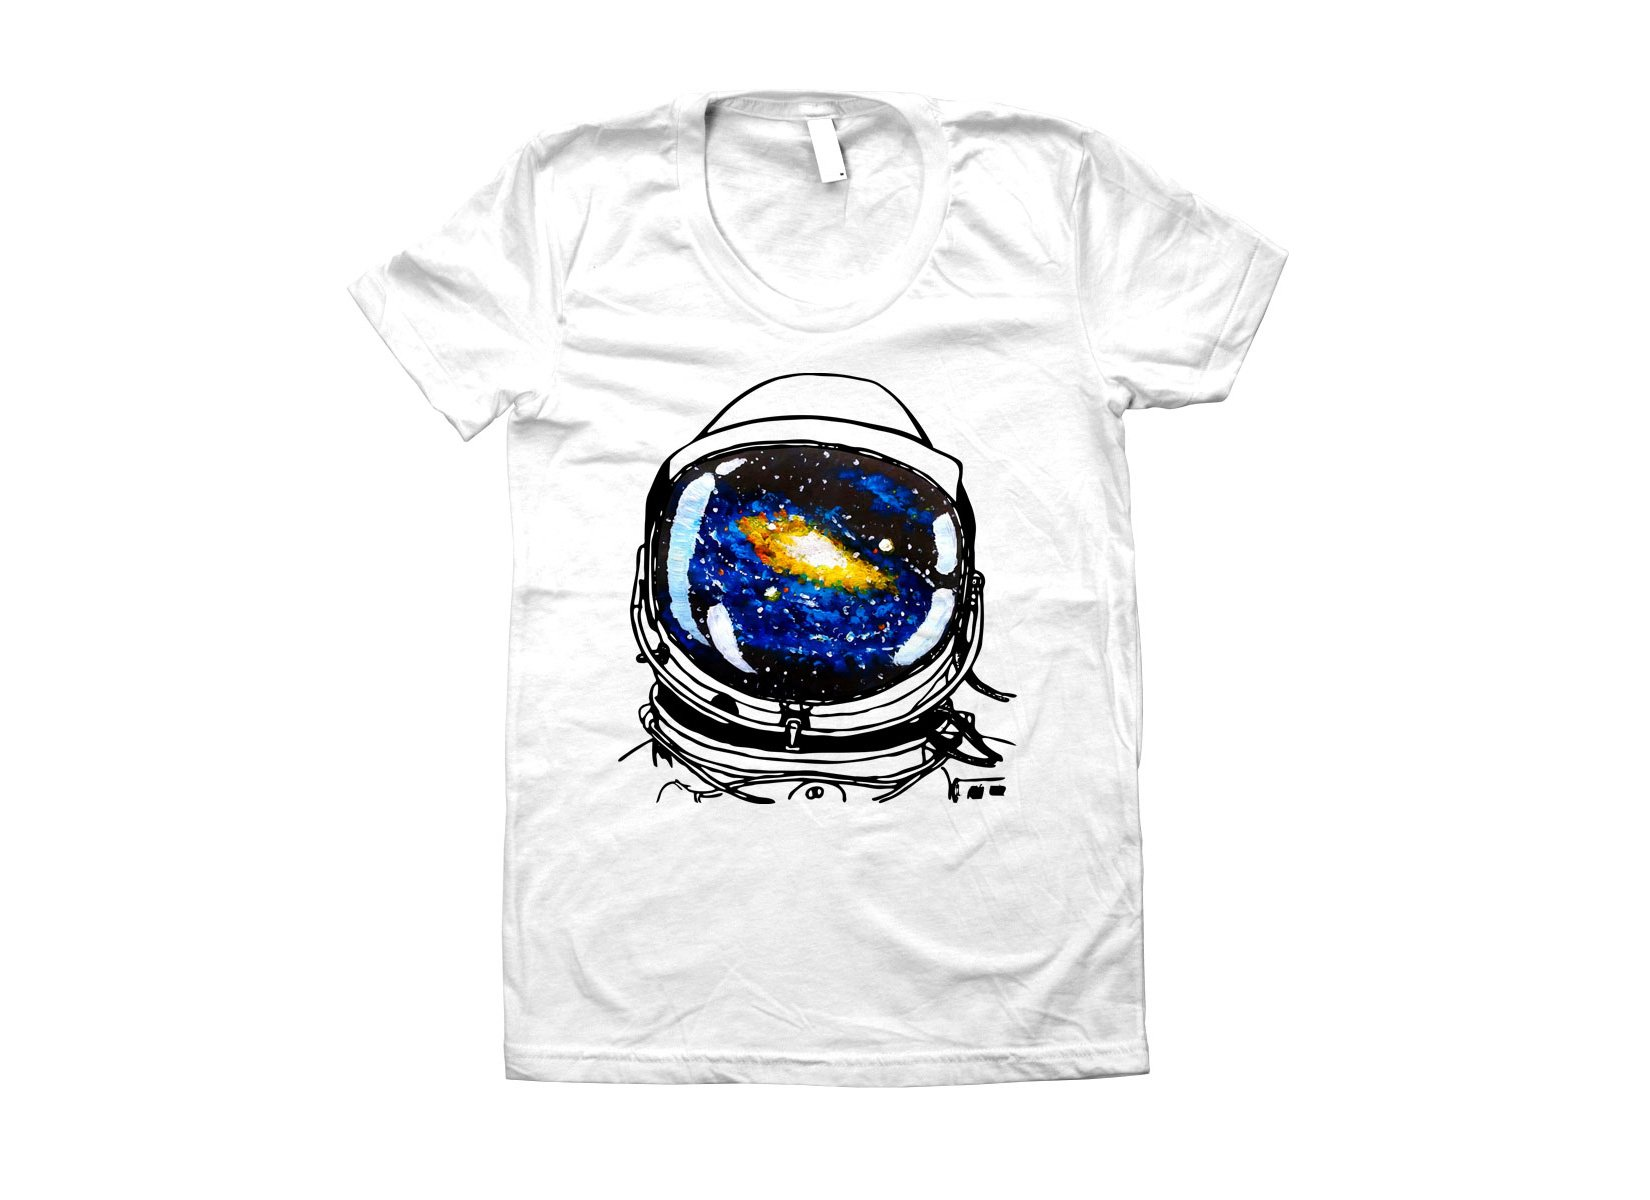 Space Sight on Juniors T-Shirt